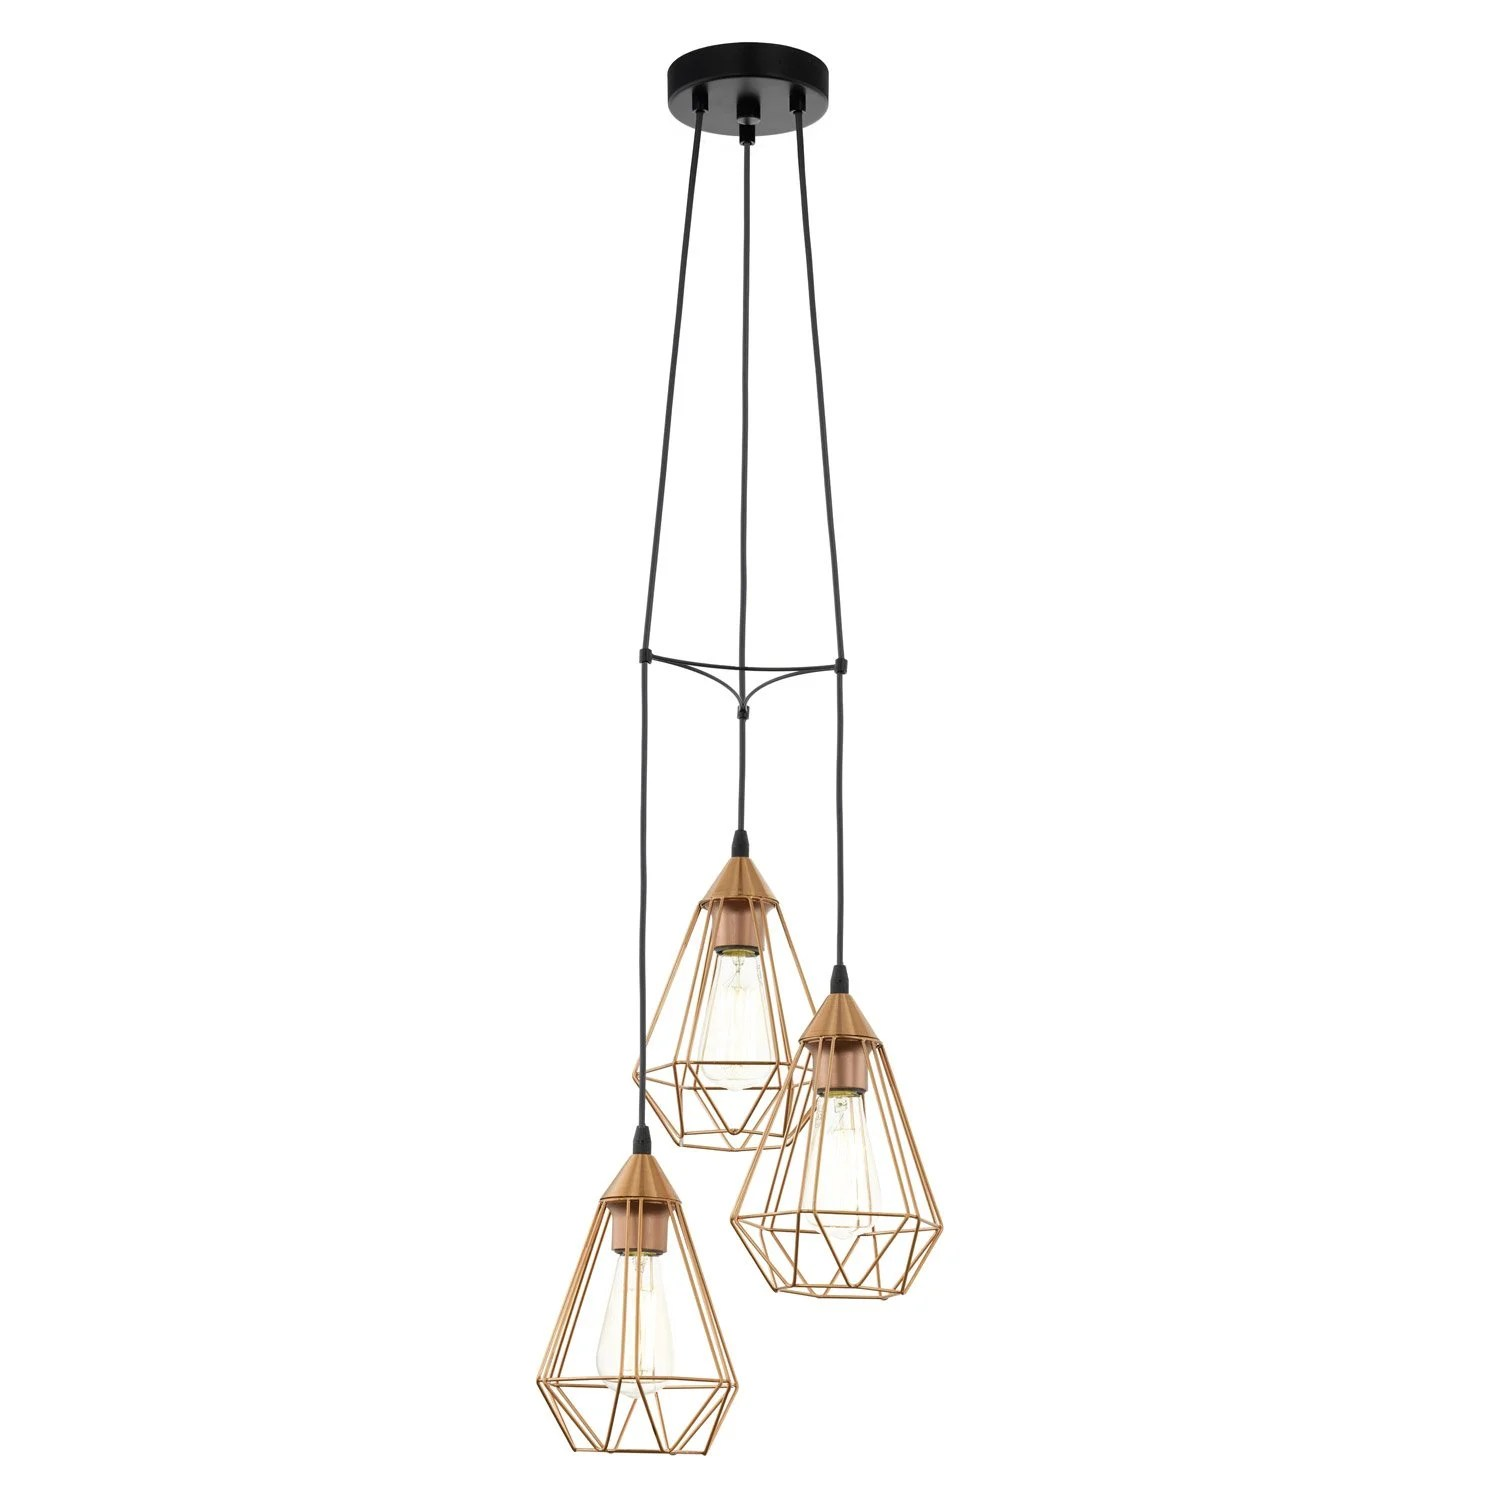 Lampe Suspension Cuivre Suspension E27 Design Tarbes Métal Cuivre 3 X 60 W Eglo